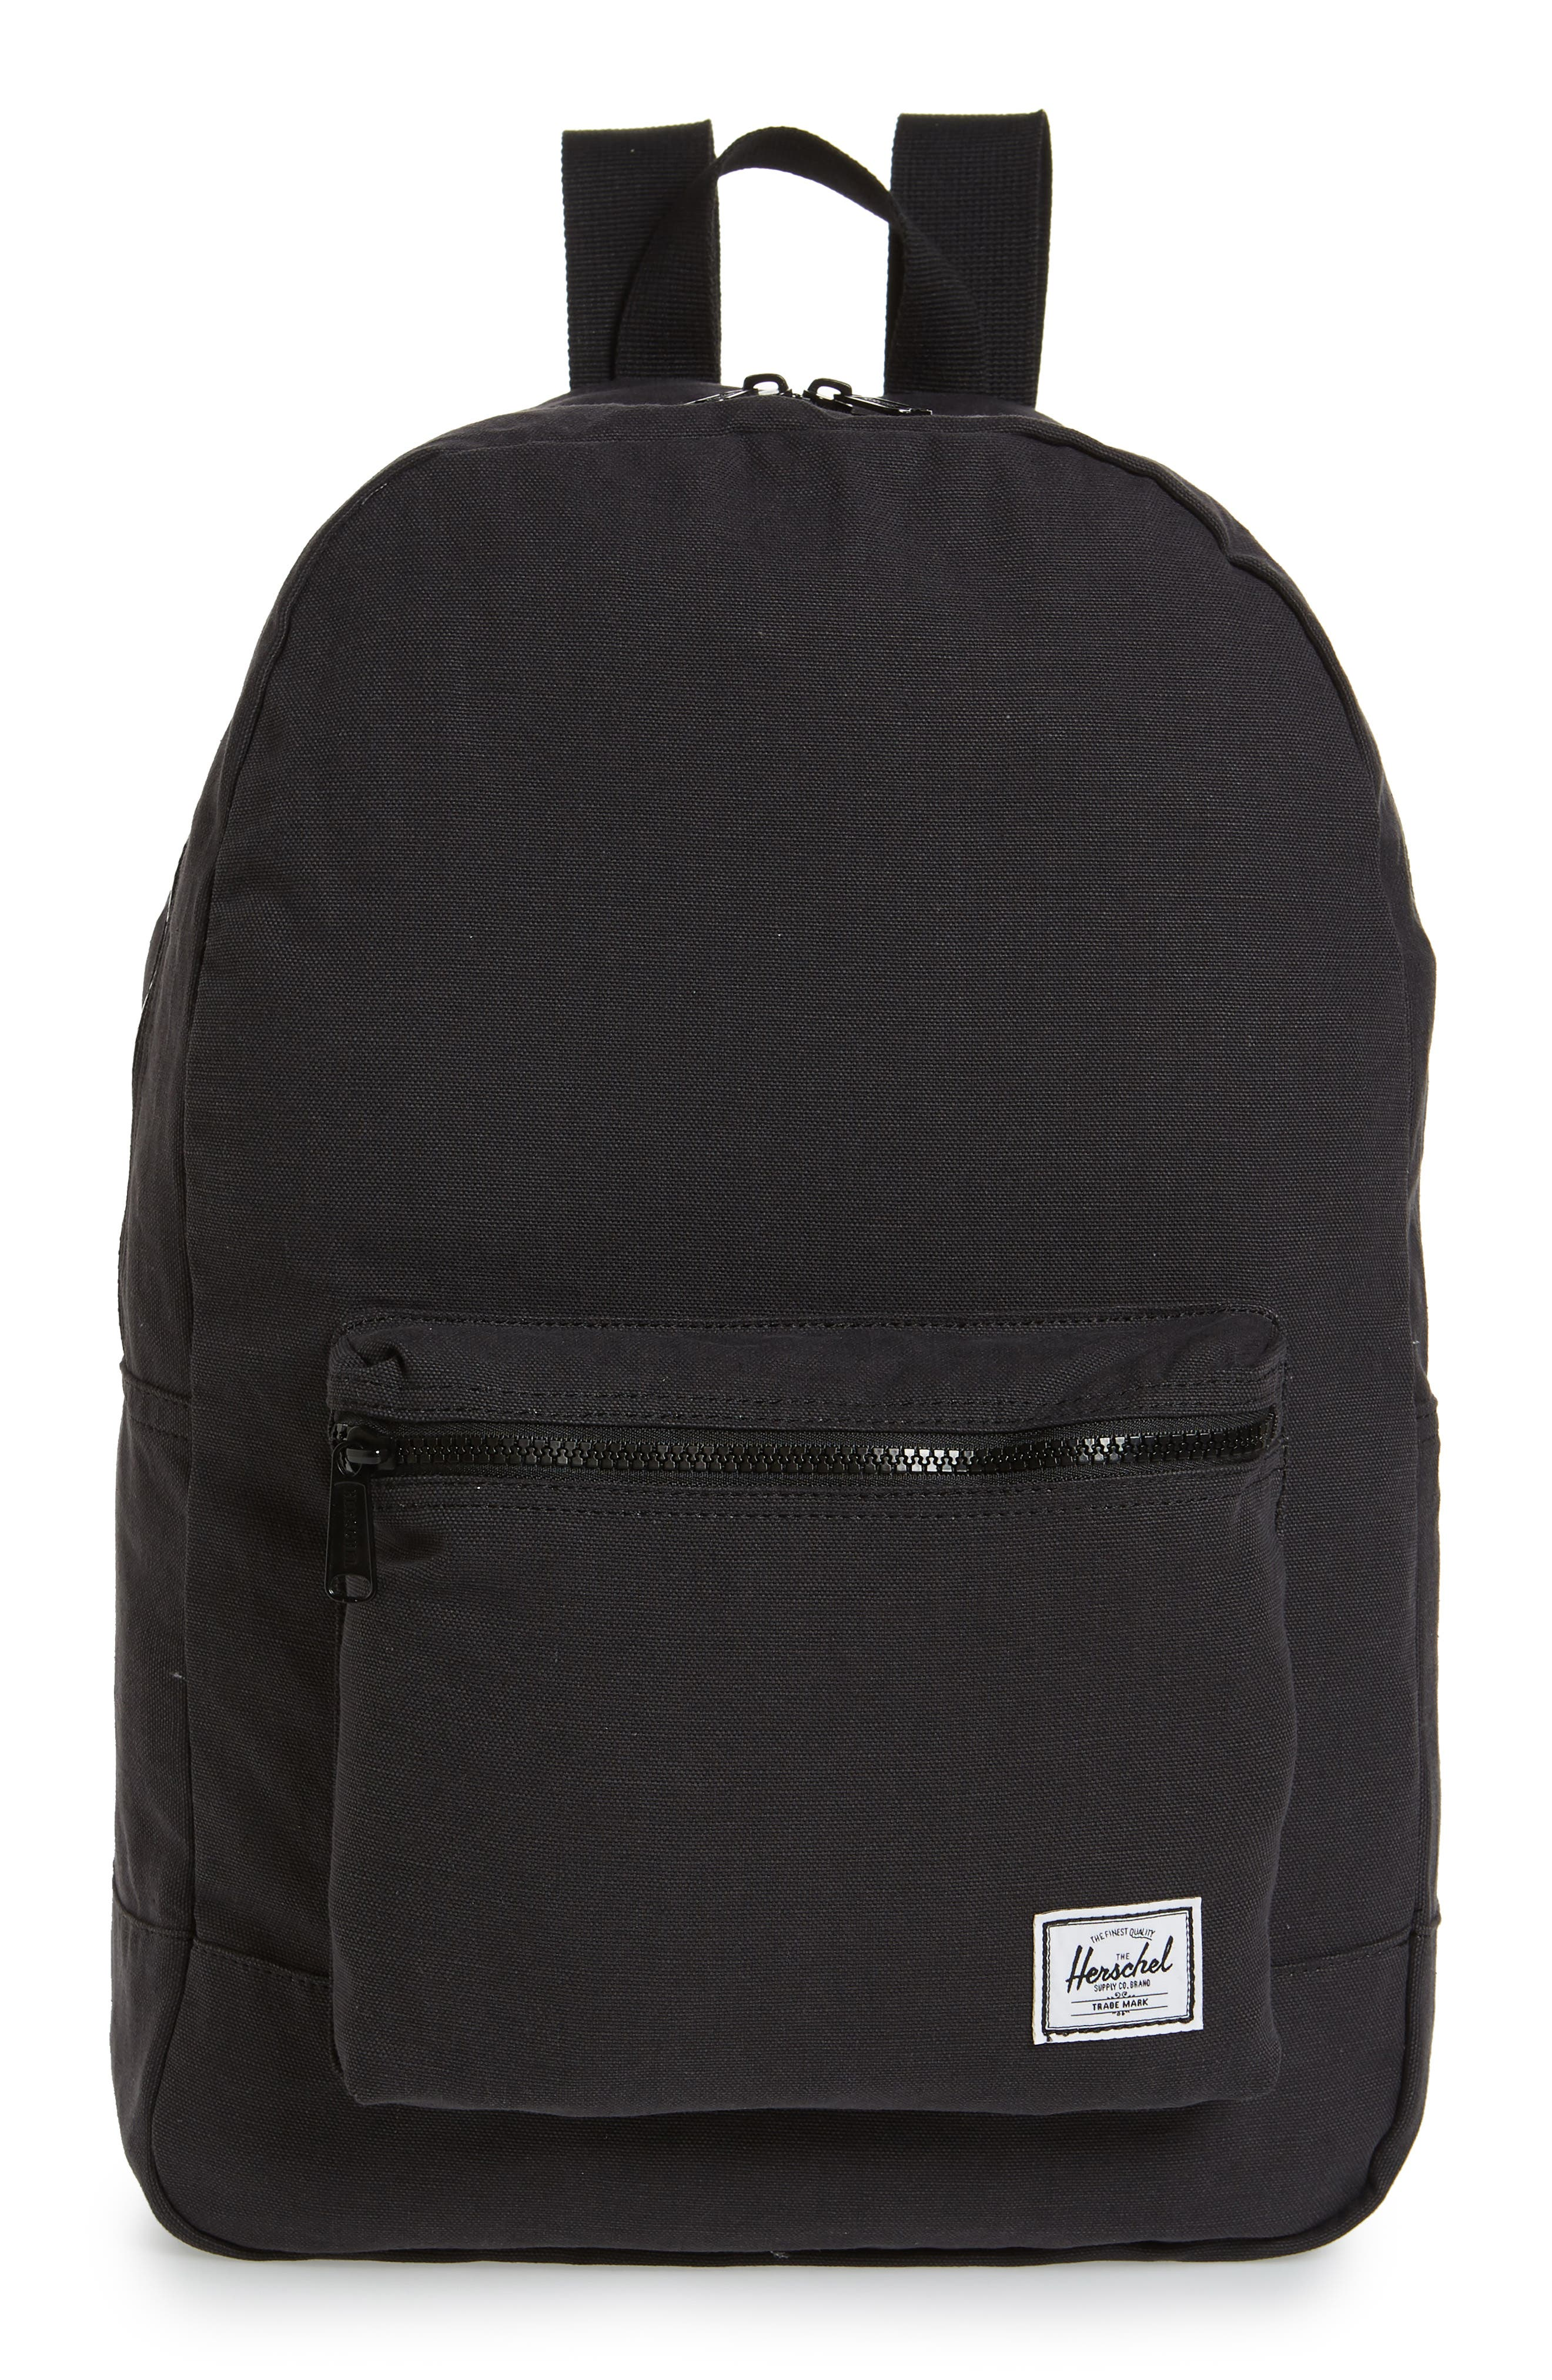 Cotton Casuals Daypack Backpack,                         Main,                         color,